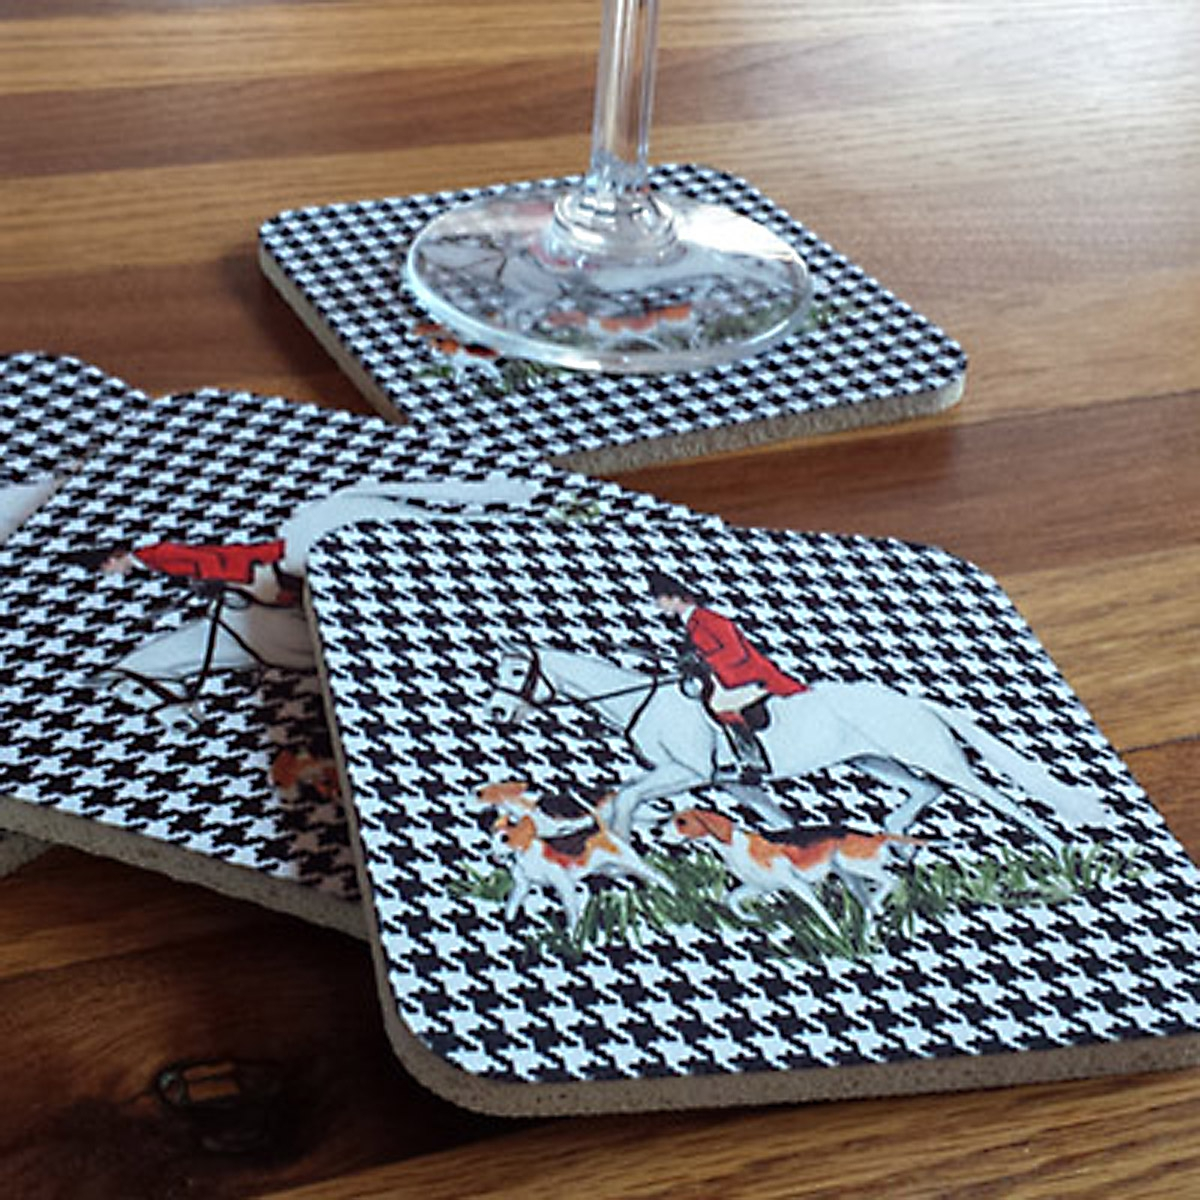 Houndzstooth Coasters